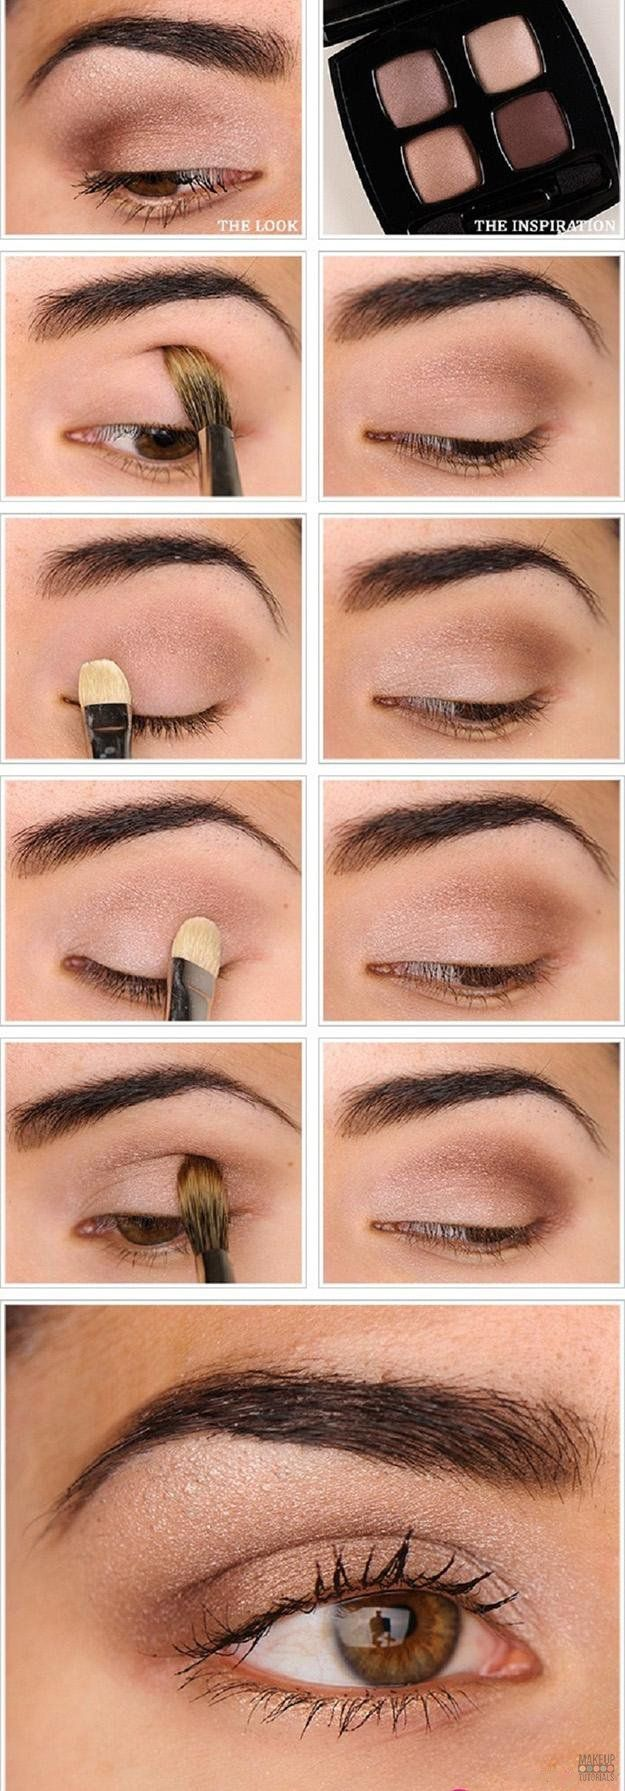 natural makeup tutorial